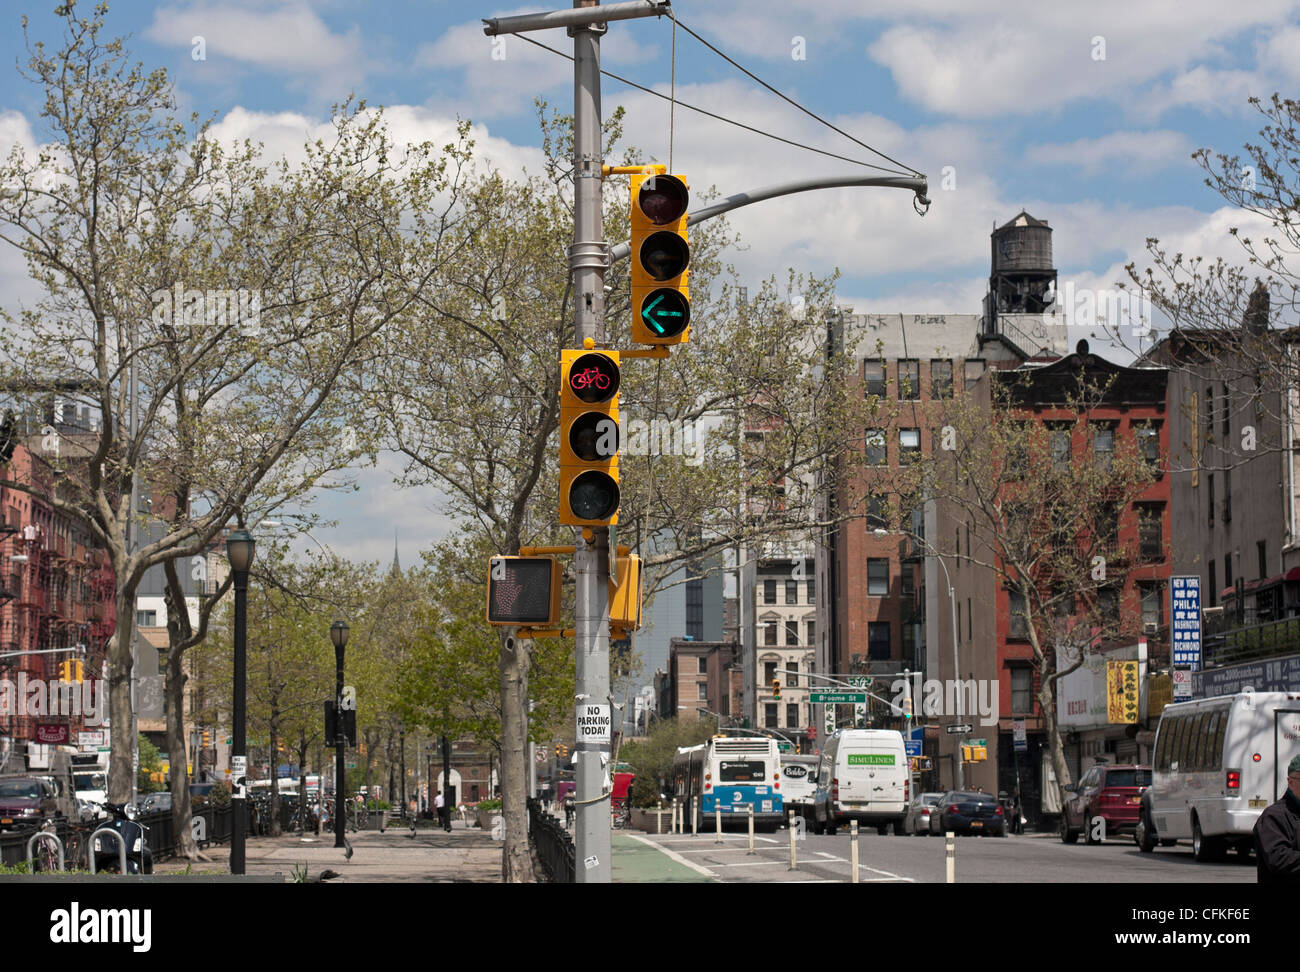 Traffic signals allow left turns while other lanes must stop. - Stock Image